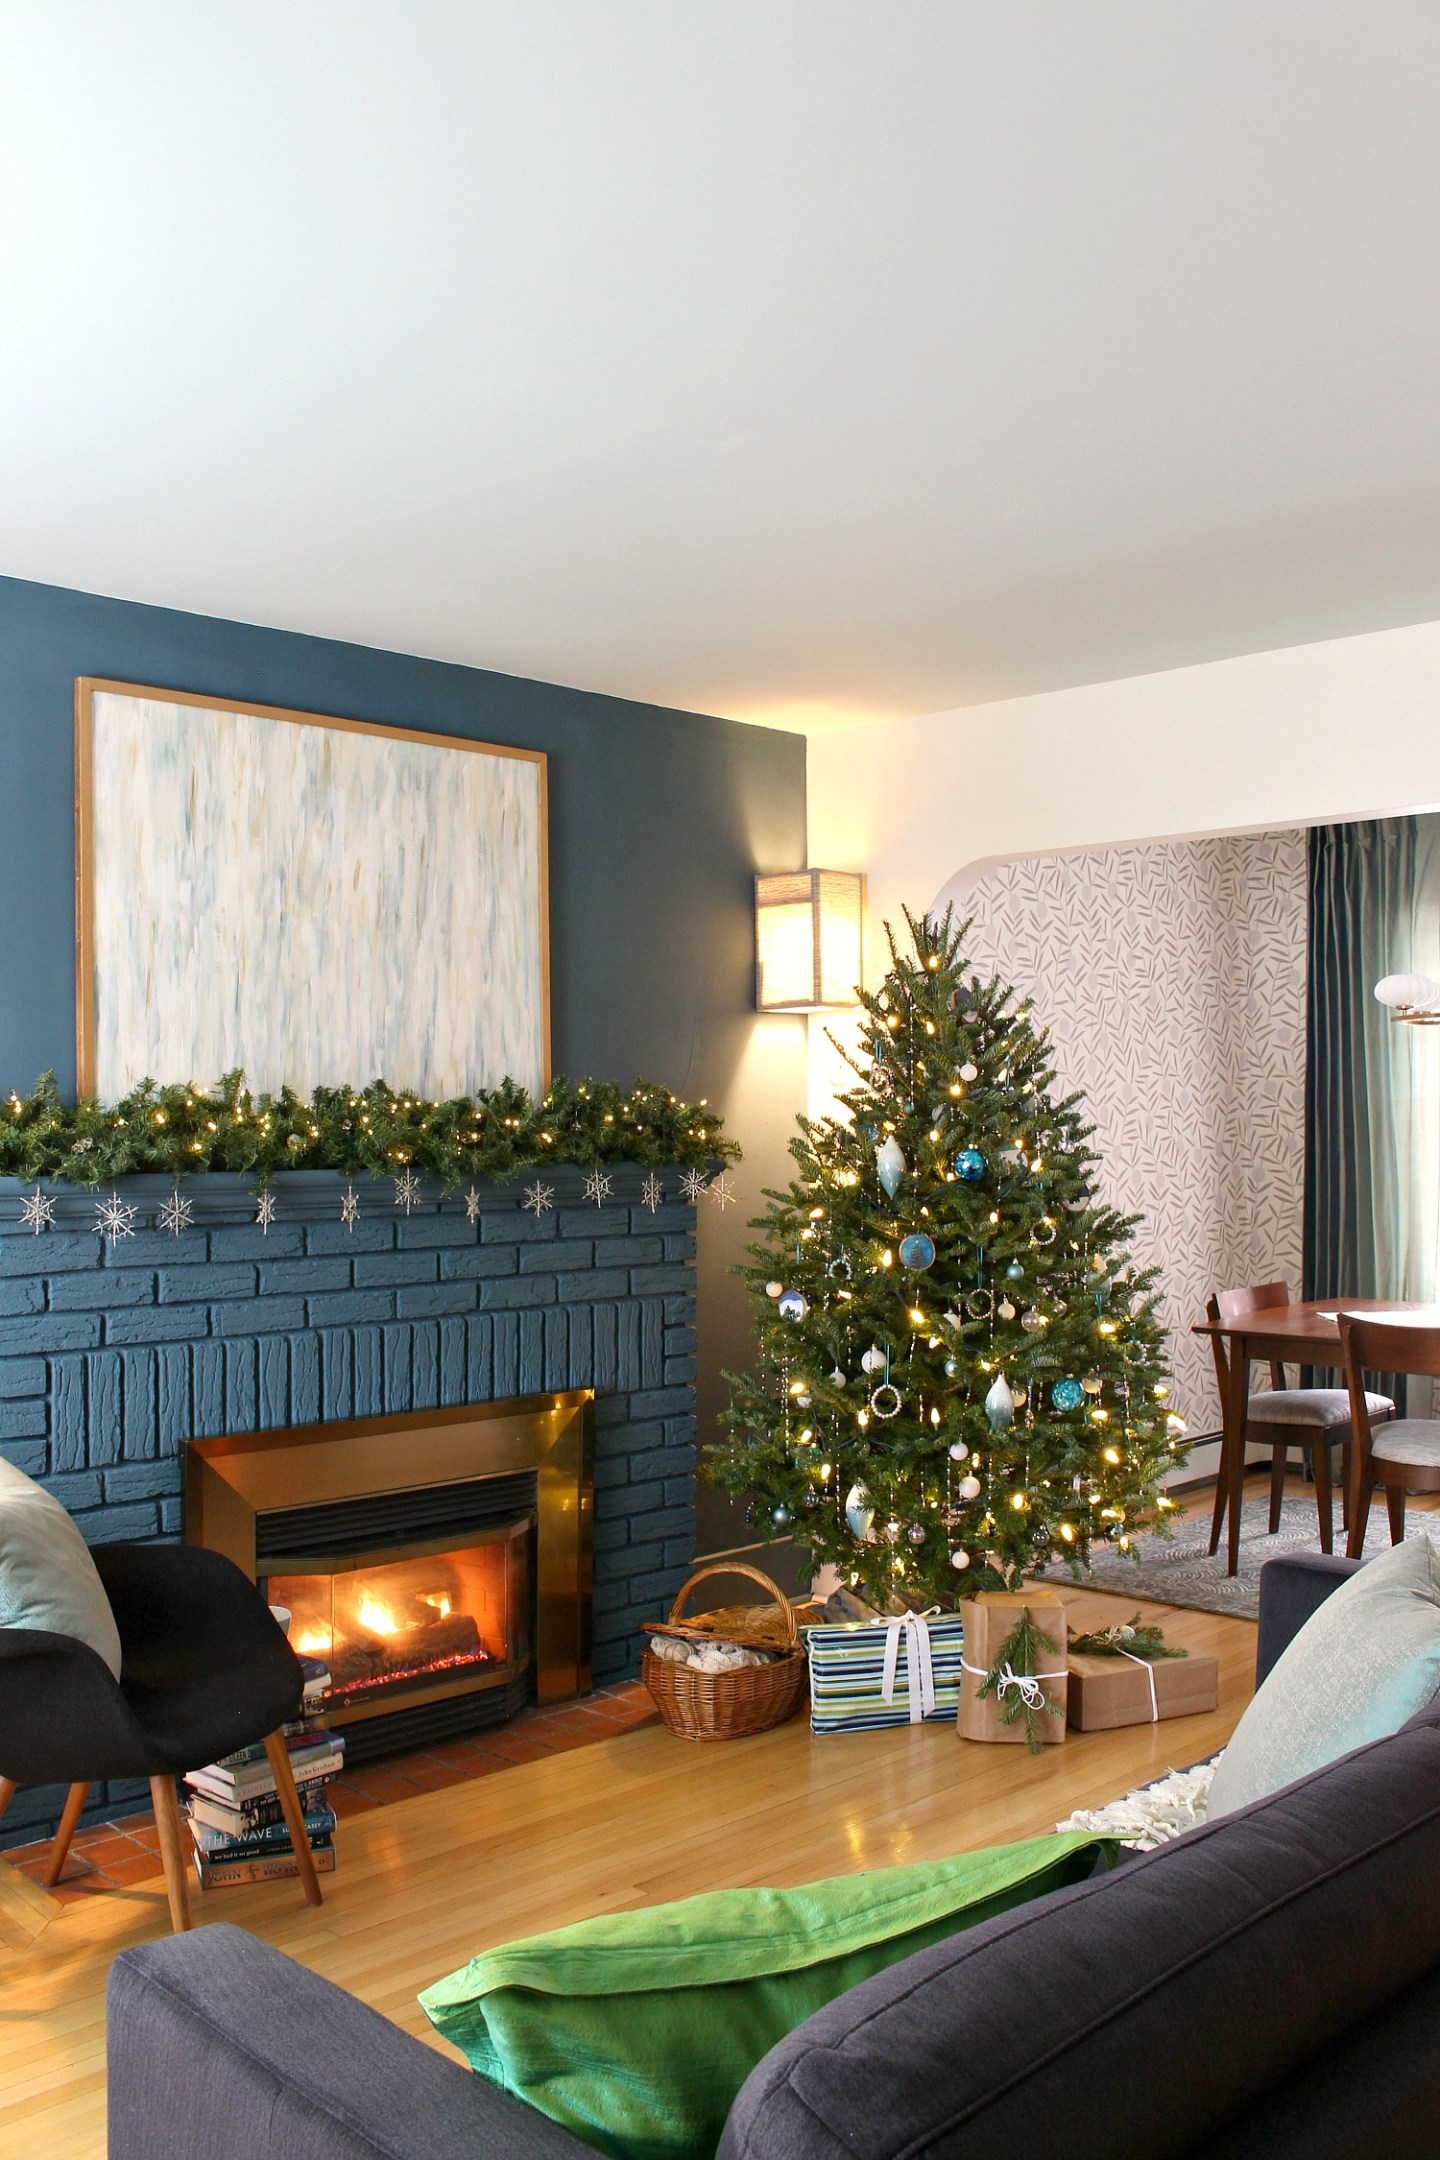 Teal and White Christmas Decorating Ideas